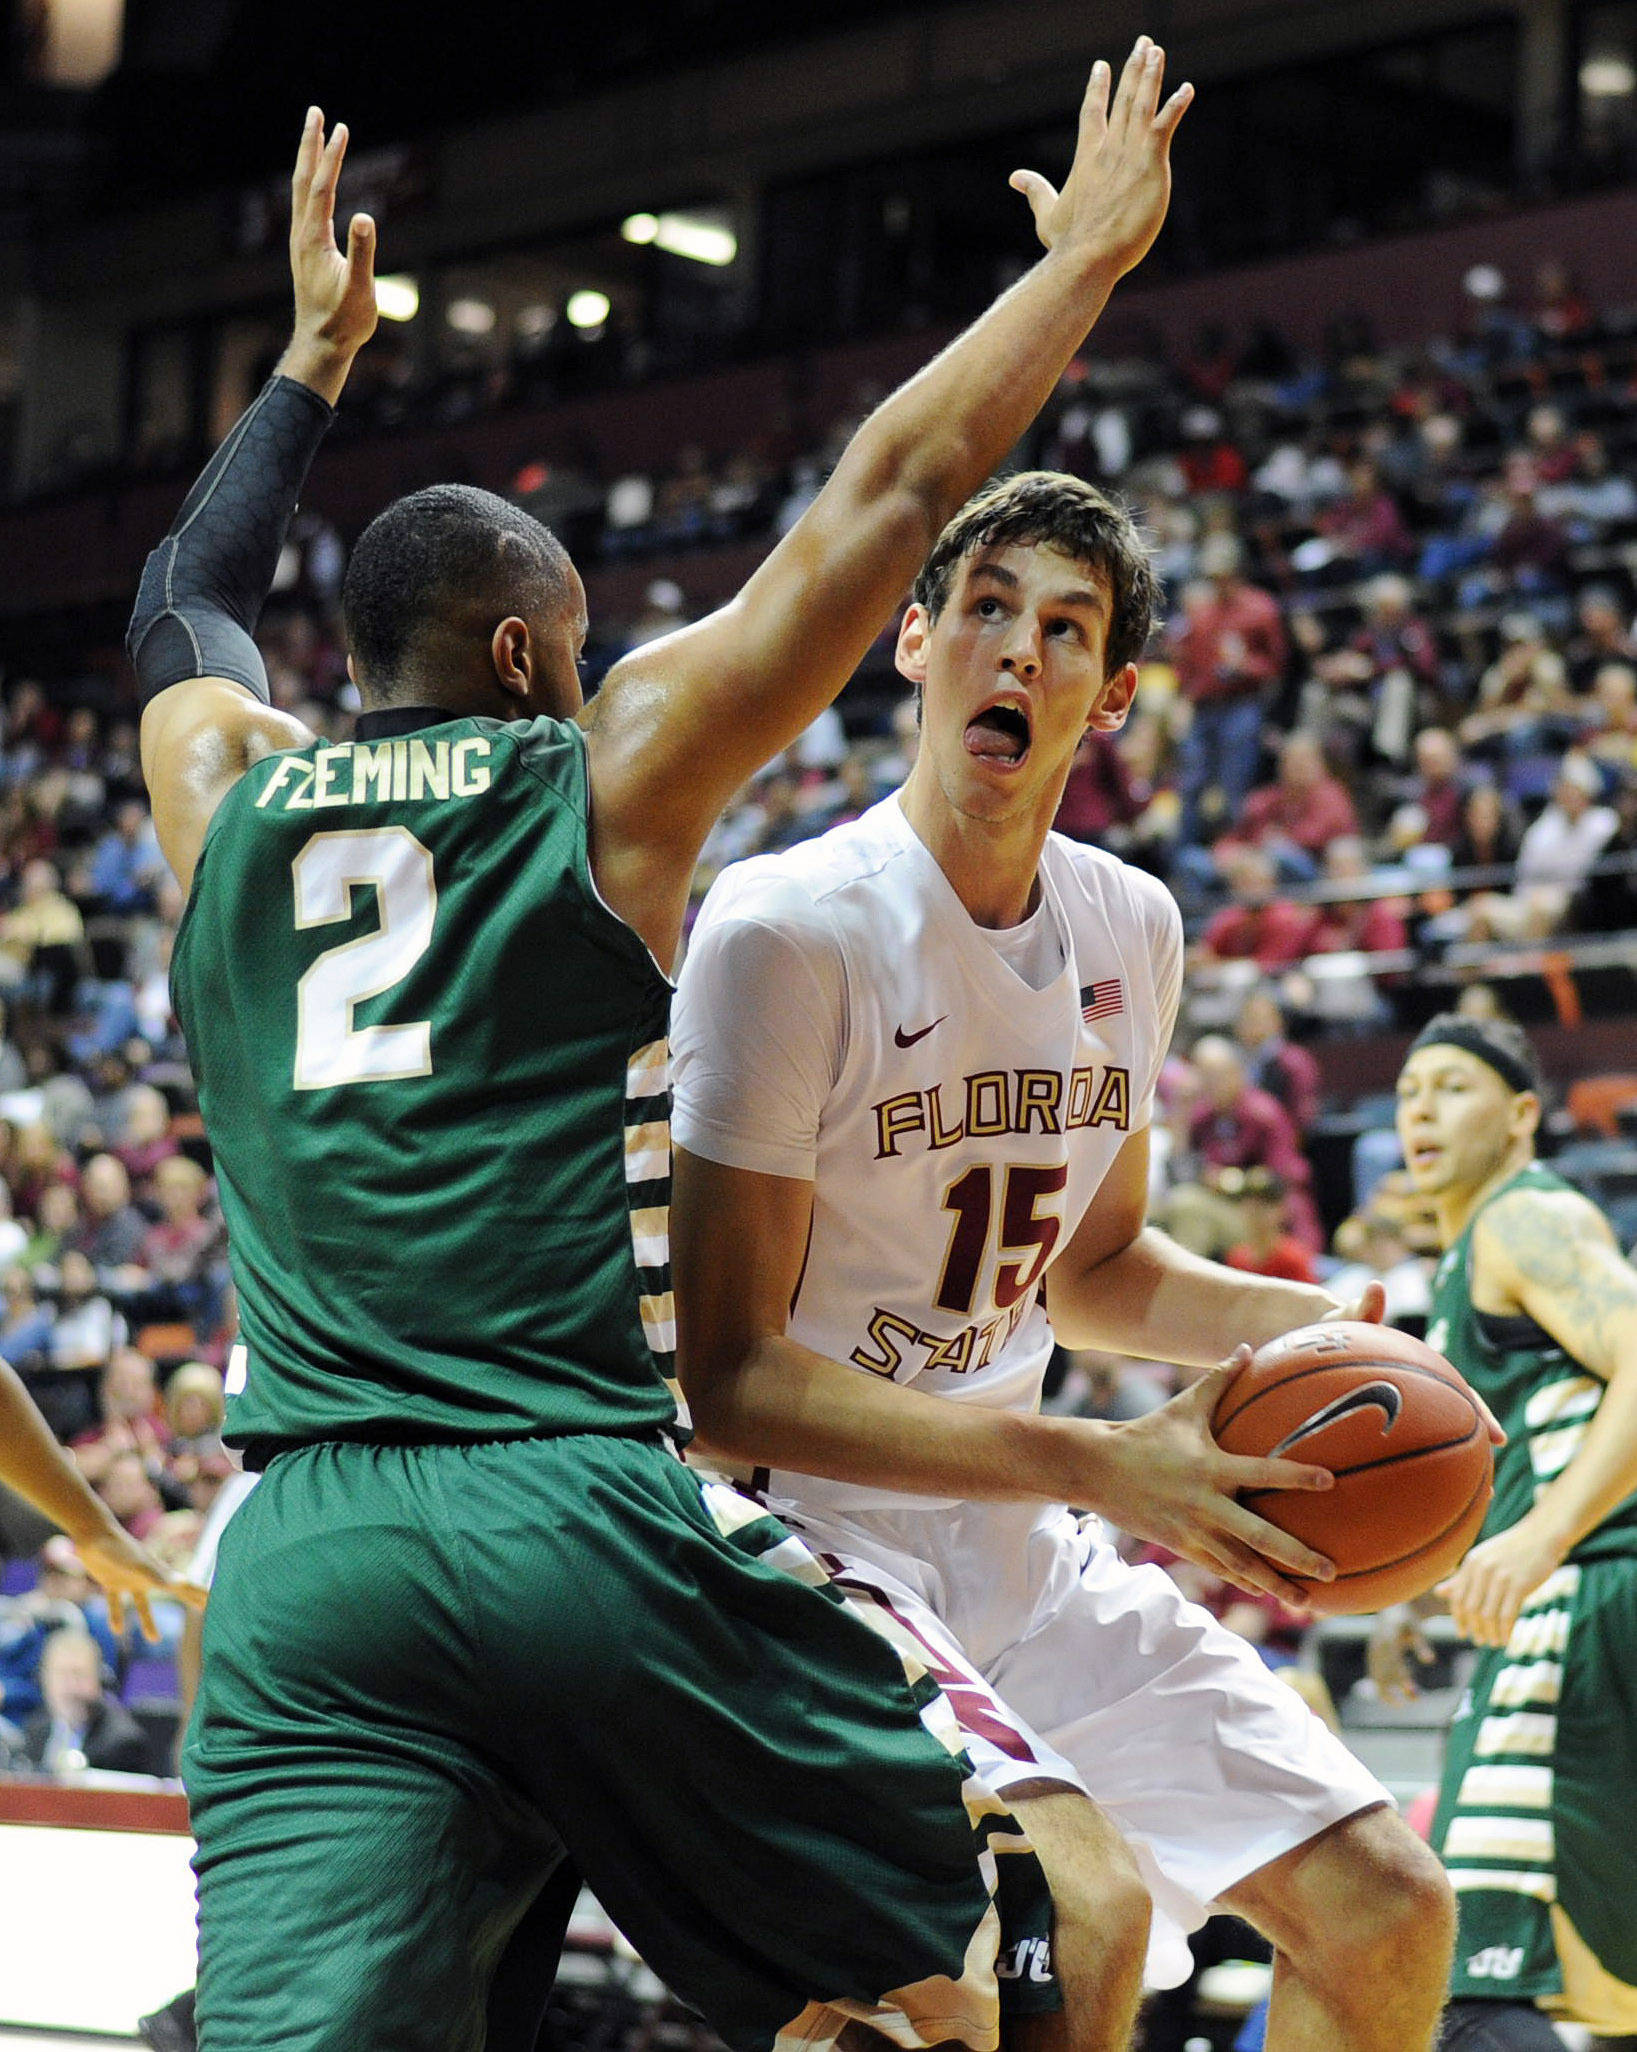 Nov 8, 2013; Tallahassee, FL, USA; Florida State Seminoles center Boris Bojanovsky (15) looks to shoot past Jacksonville Dolphins forward Kordario Fleming (2) during the first half at the Donald L. Tucker Center. Mandatory Credit: Melina Vastola-USA TODAY Sports